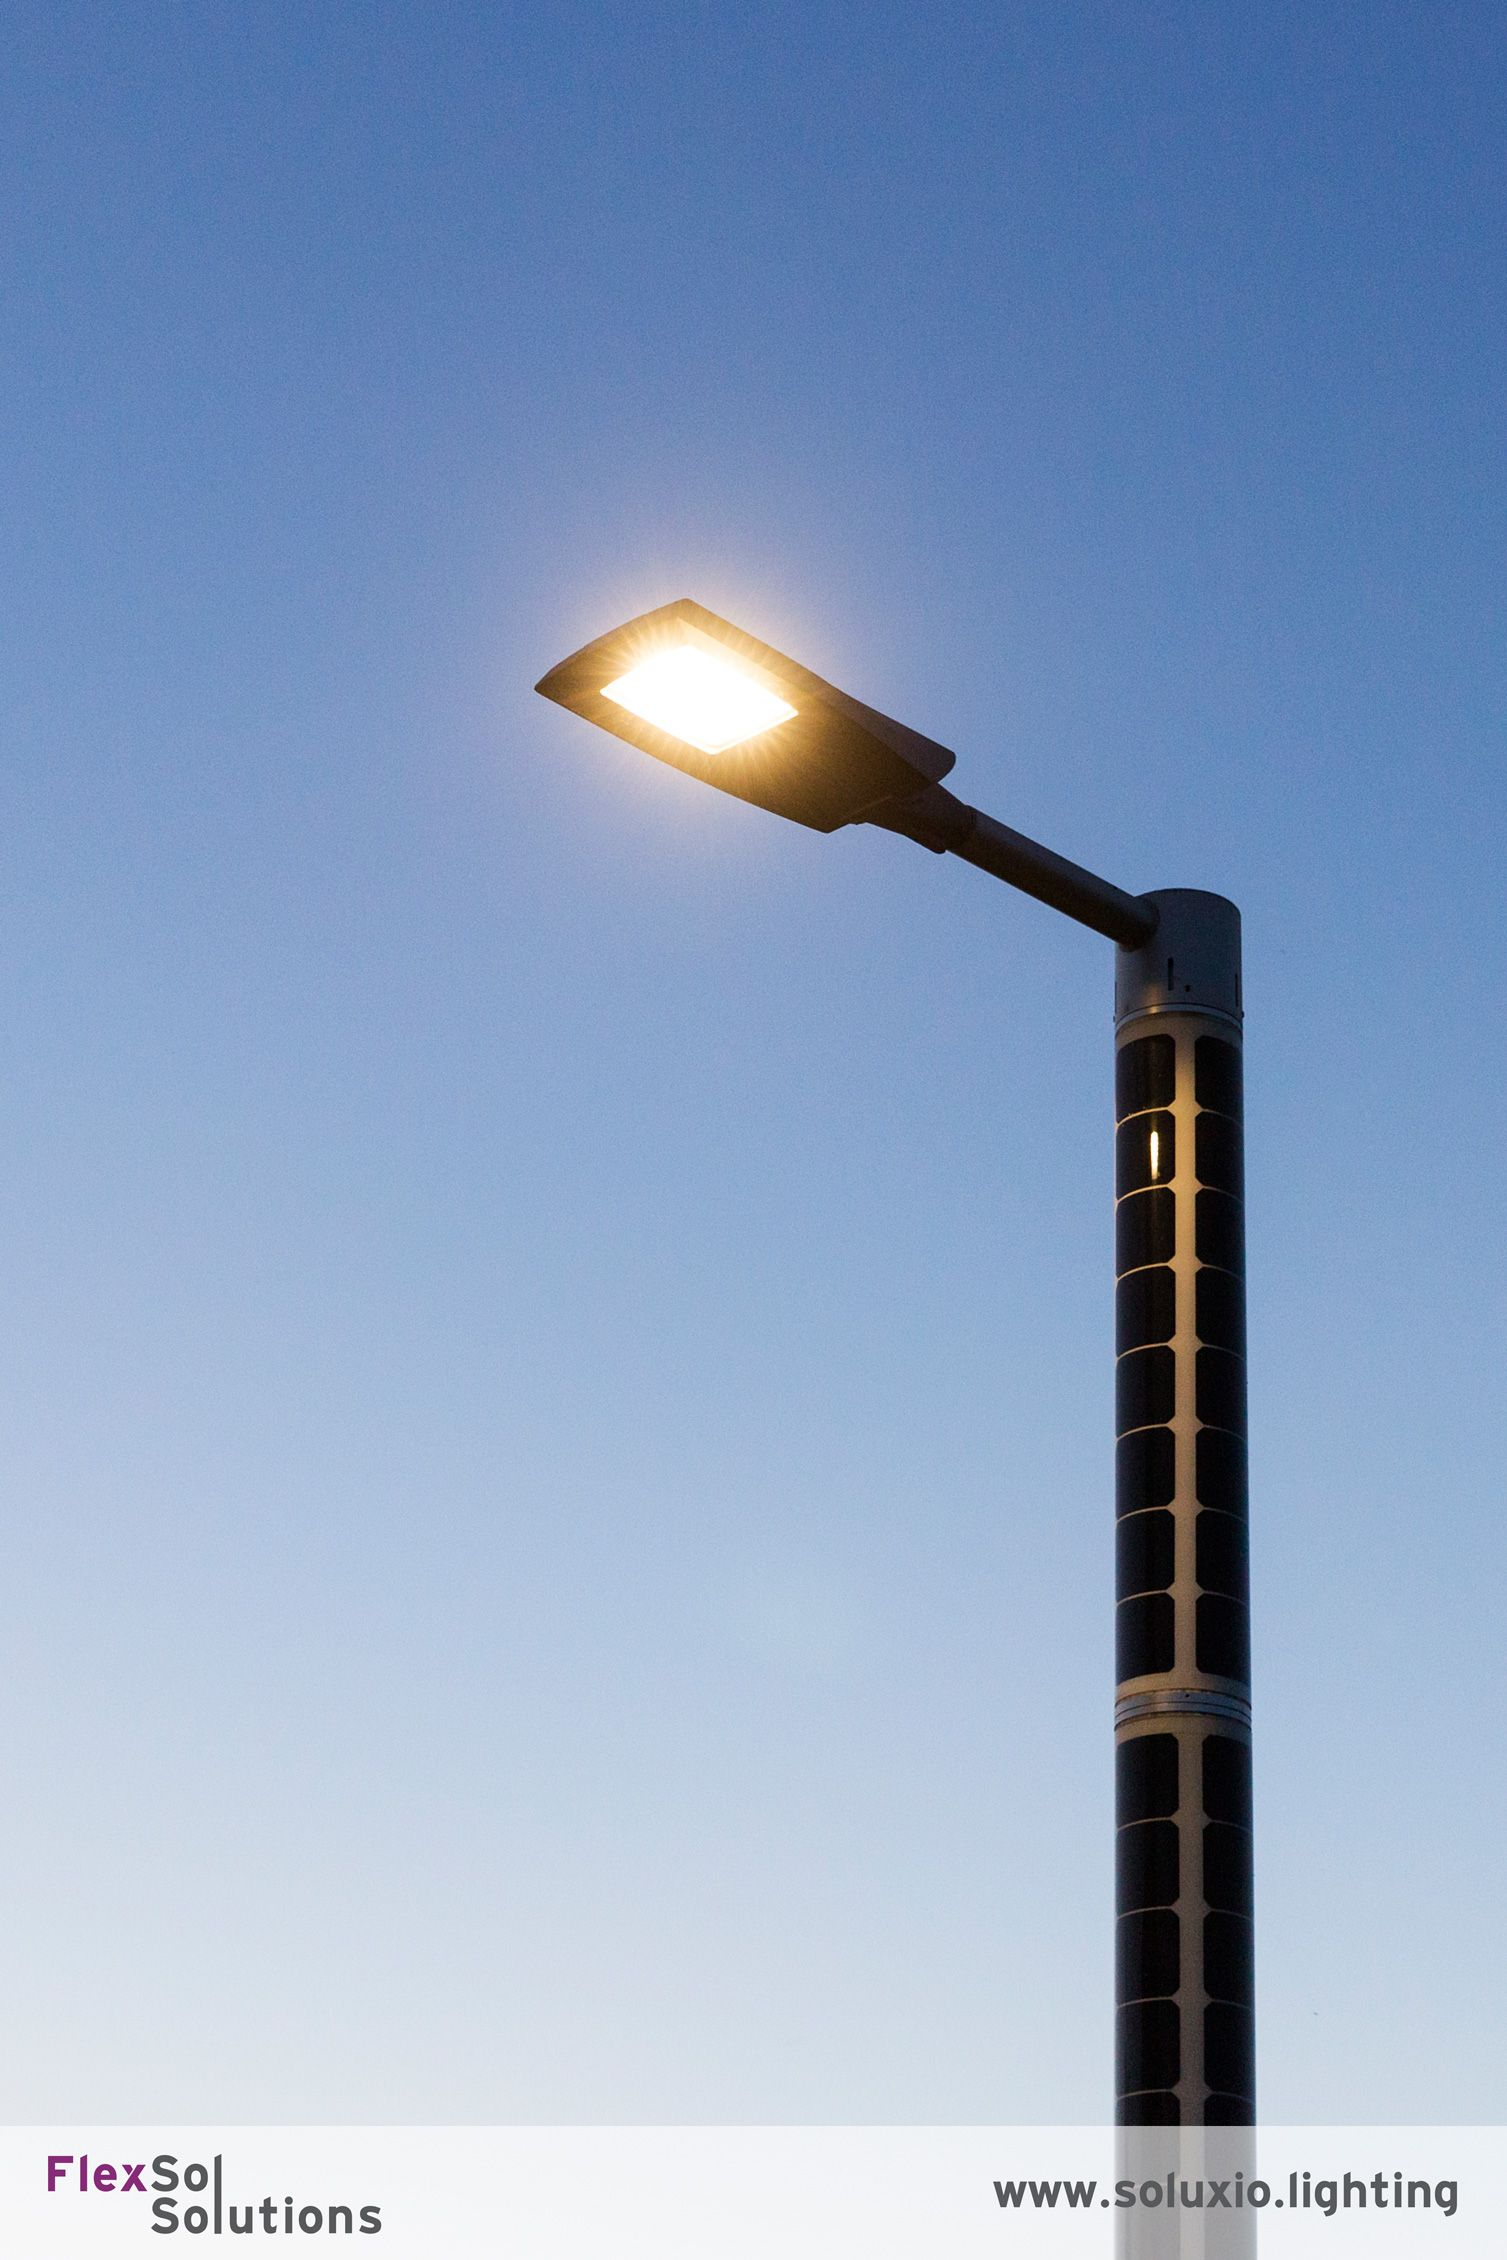 Solar Lamp Buiten The Soluxio The Most Advanced Solar Powered Streetlight Can Be